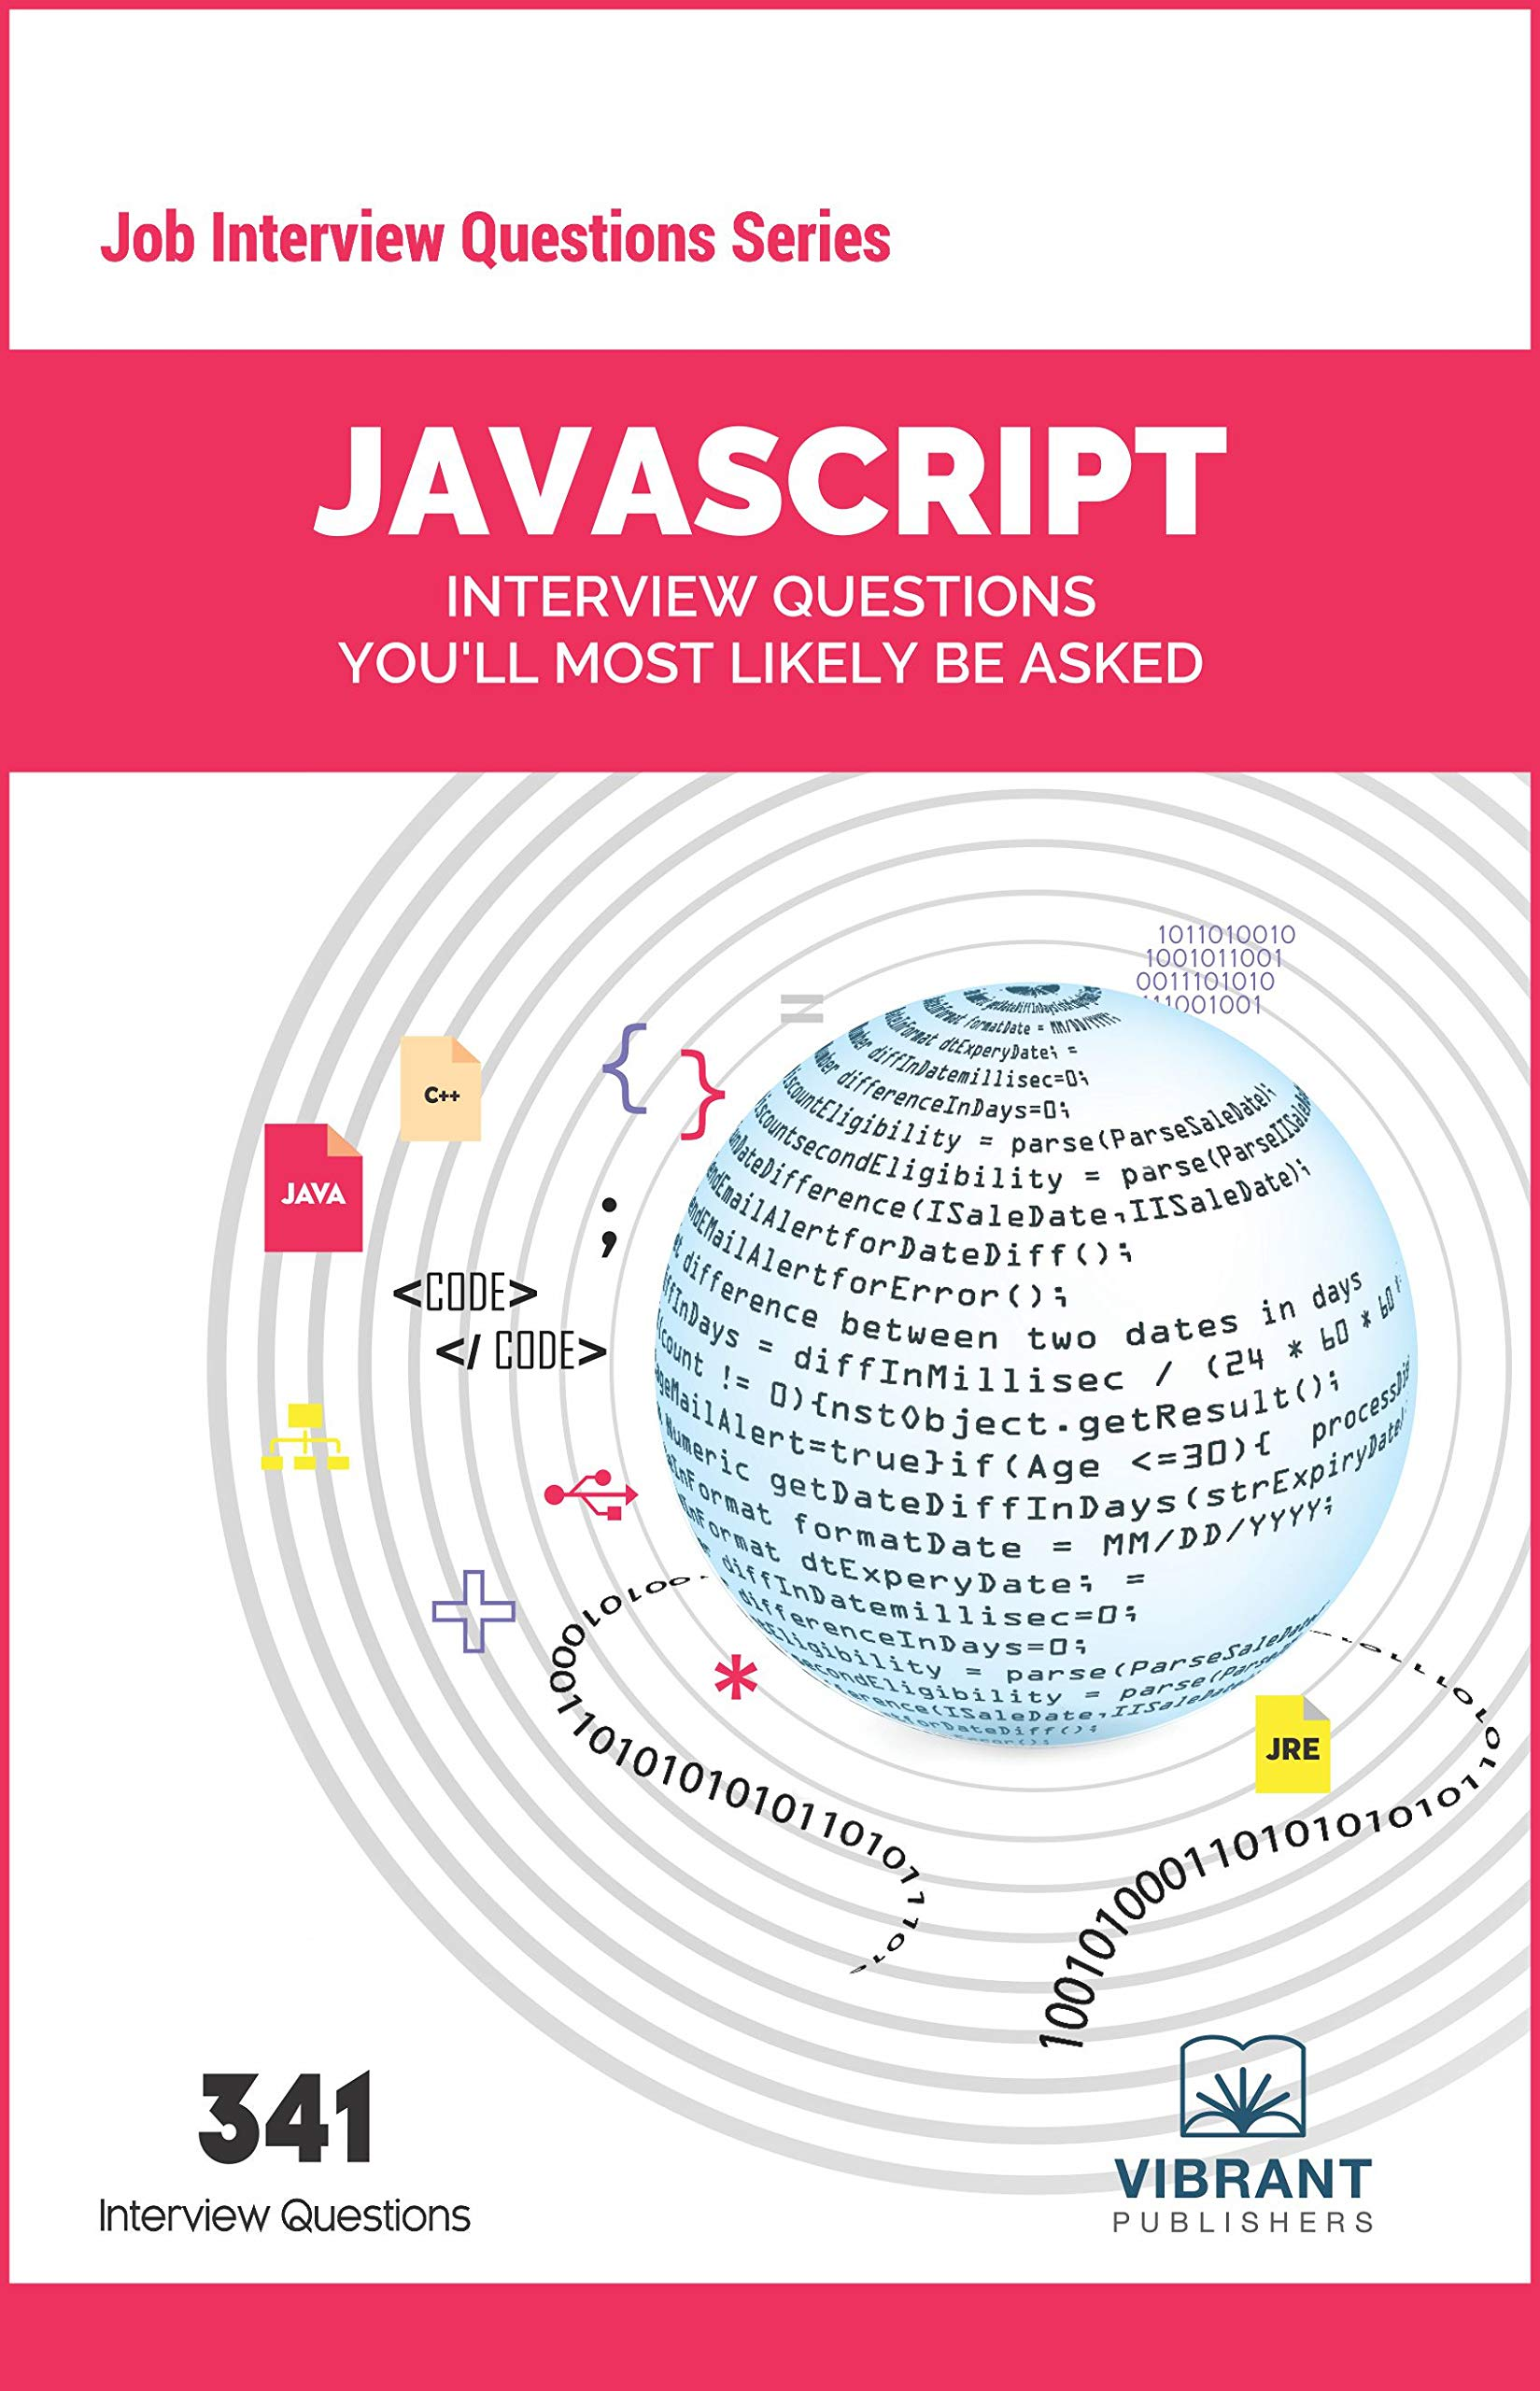 JavaScript Interview Questions You'll Most Likely Be Asked: Volume 25 (Job Interview Questions) [Paperback] Vibrant Publishers